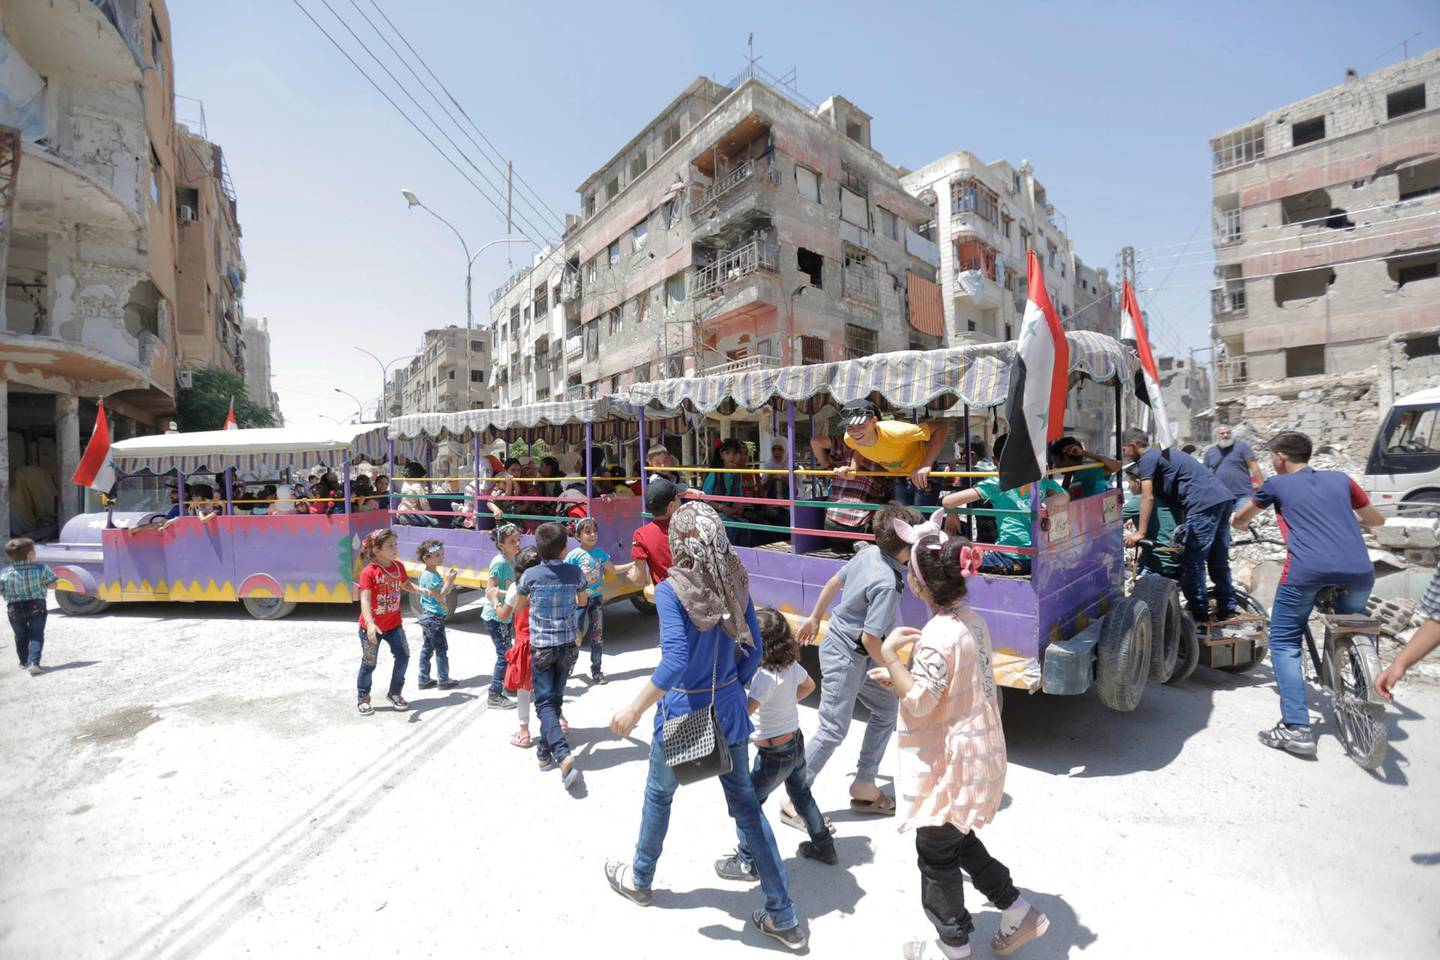 epaselect epa06810011 Adults and children ride a fun train amid destroyed houses in Douma City, eastern Ghouta region, Syria, 15 June 2018. The Islamic Army group held the city for several years before being liberated by the Syrian army two months ago. Muslims around the world are preparing to celebrate Eid al-Fitr, the three day festival marking the end of the Muslim holy month of Ramadan, it will be observed on 15th or 16th of June depending on the lunar calendar. Eid al-Fitr is one of the two major holidays in Islam.  EPA/YOUSSEF BADAWI